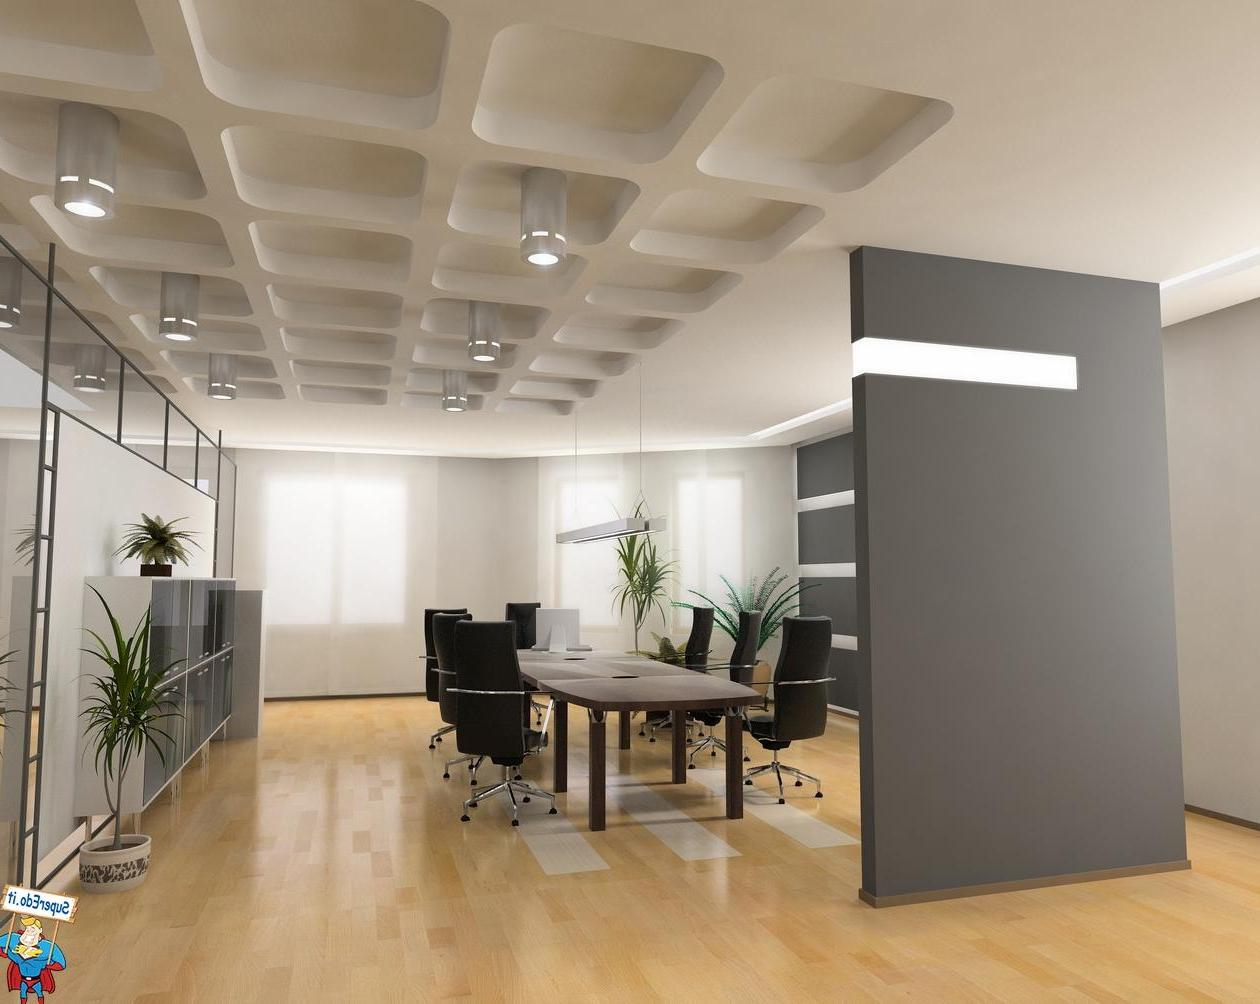 Pleasant Minimalist Office Means Valuable Assets For The Company: Modern Interior Design Ideas House Decorating Ideas